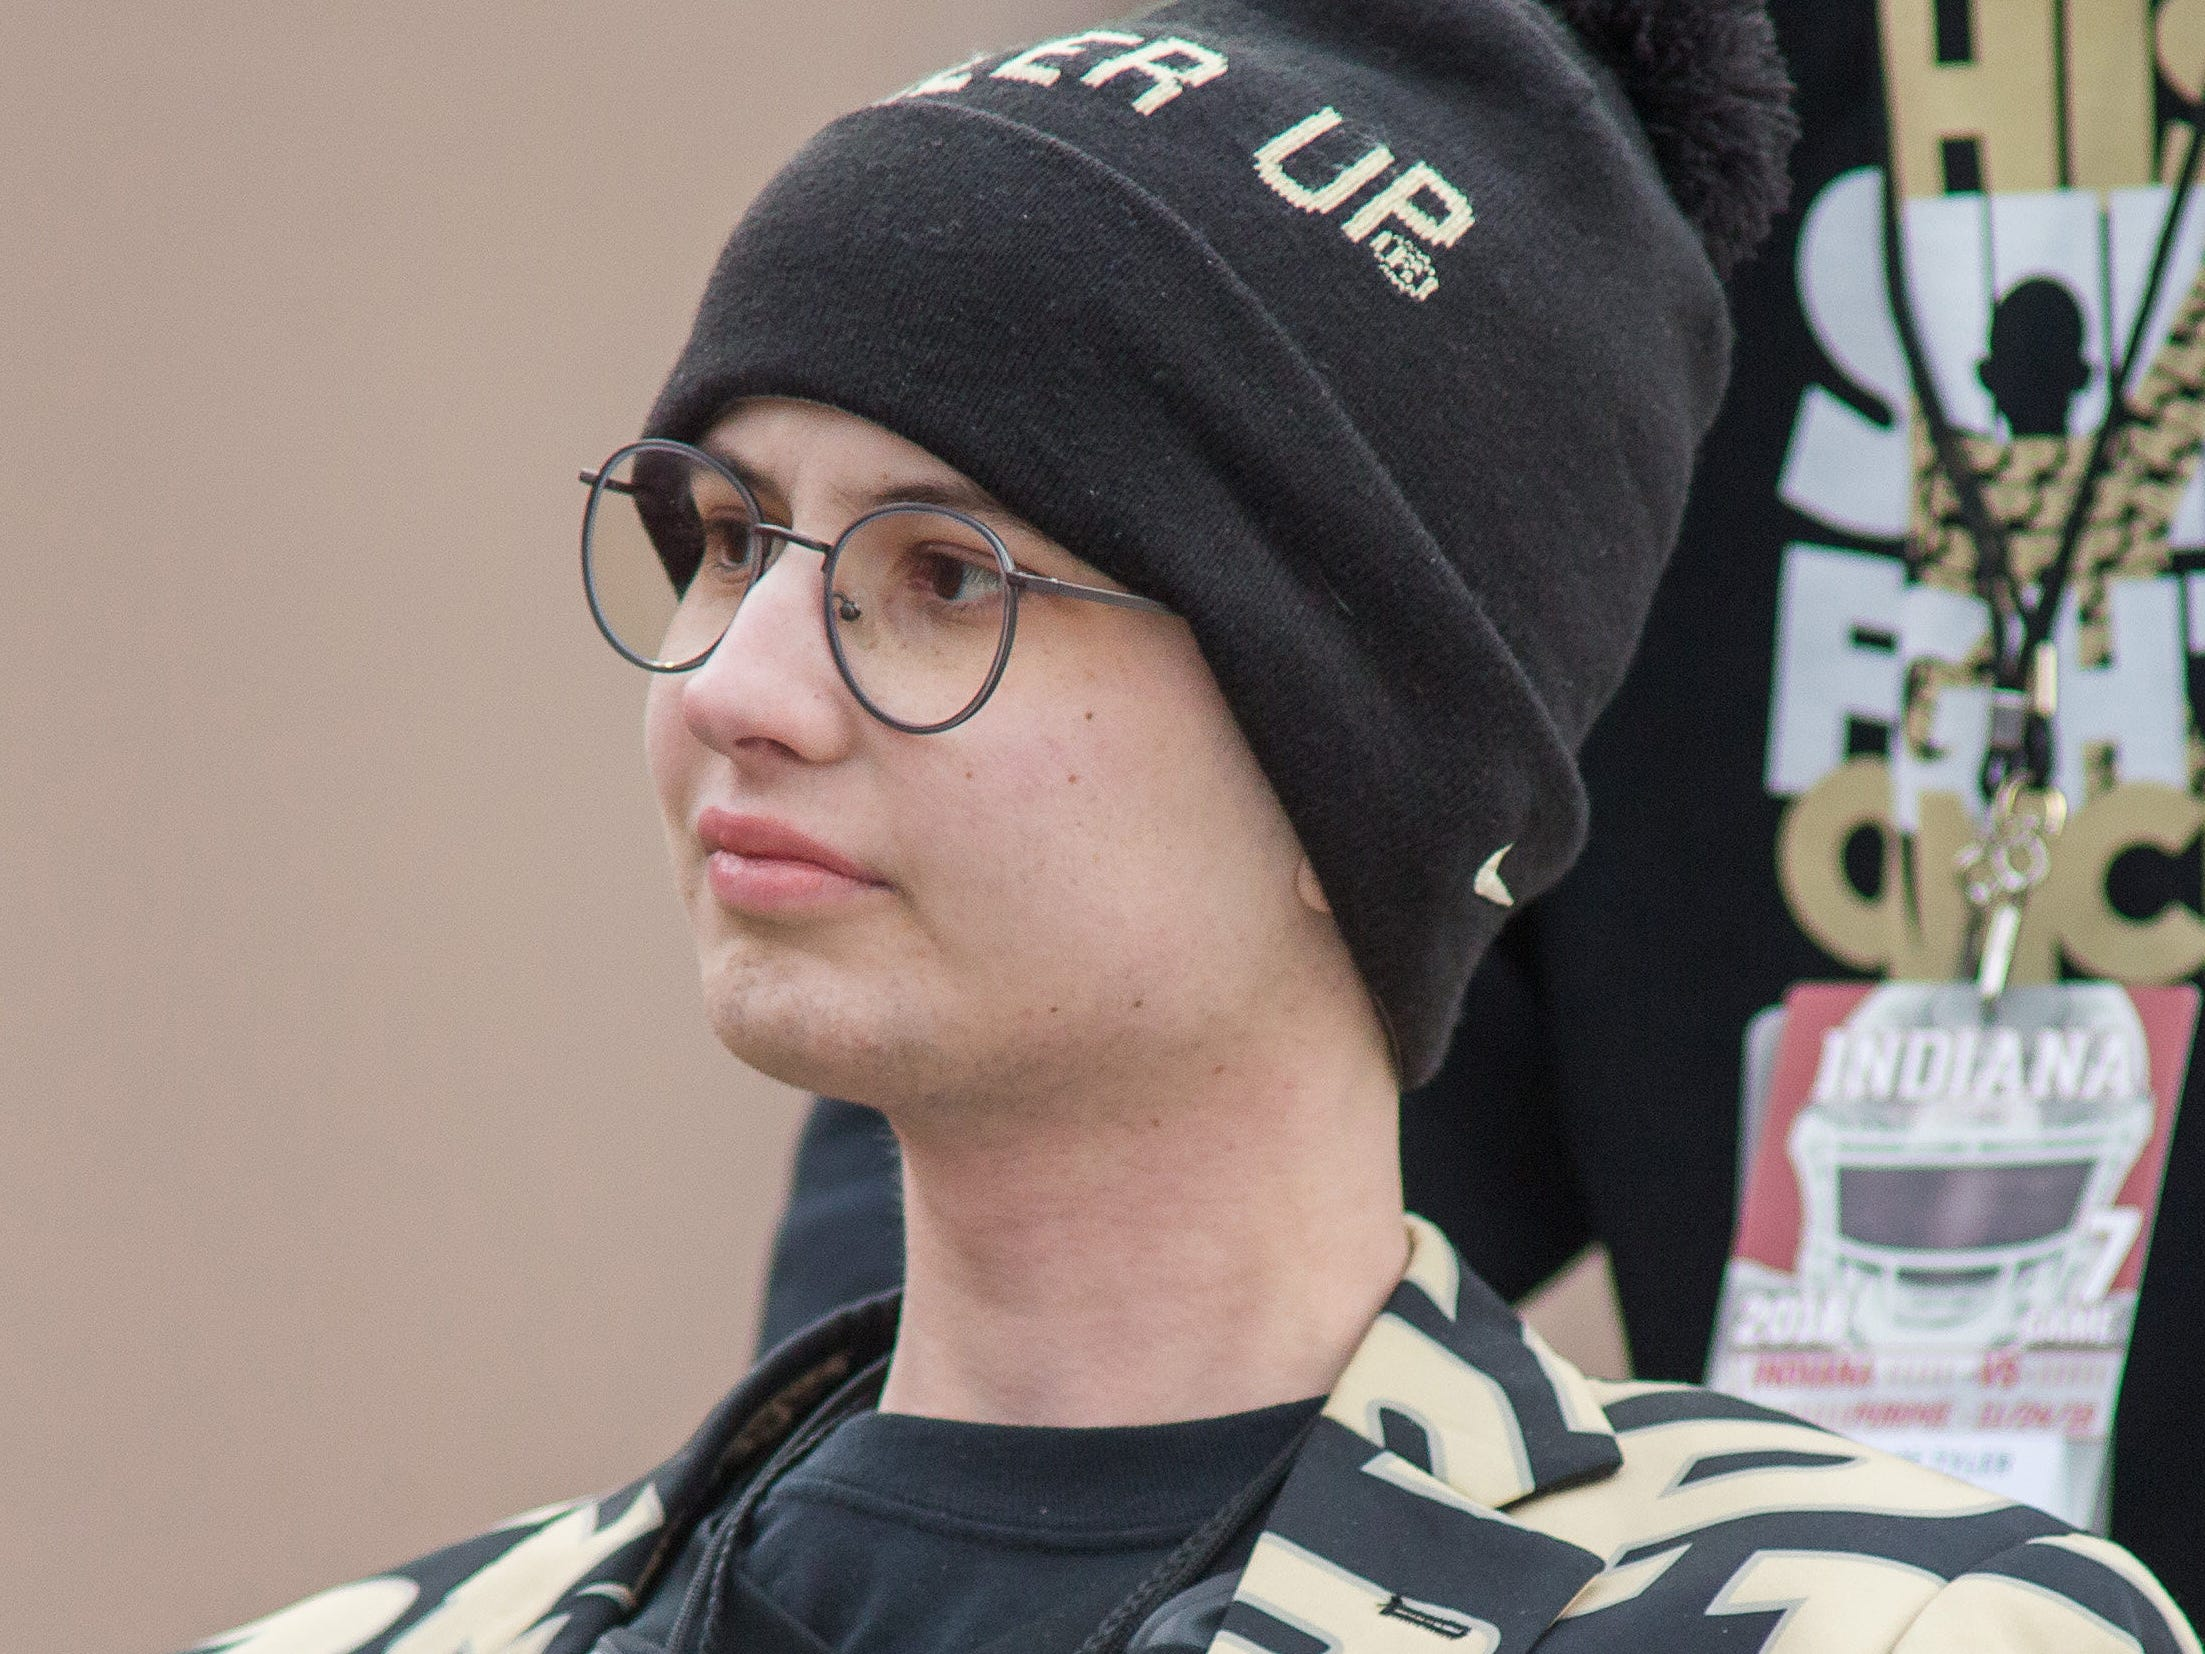 Boilermakers fan and coin flip participant Tyler Trent looks on from on the field before a game against the Indiana Hoosiers at Memorial Stadium.